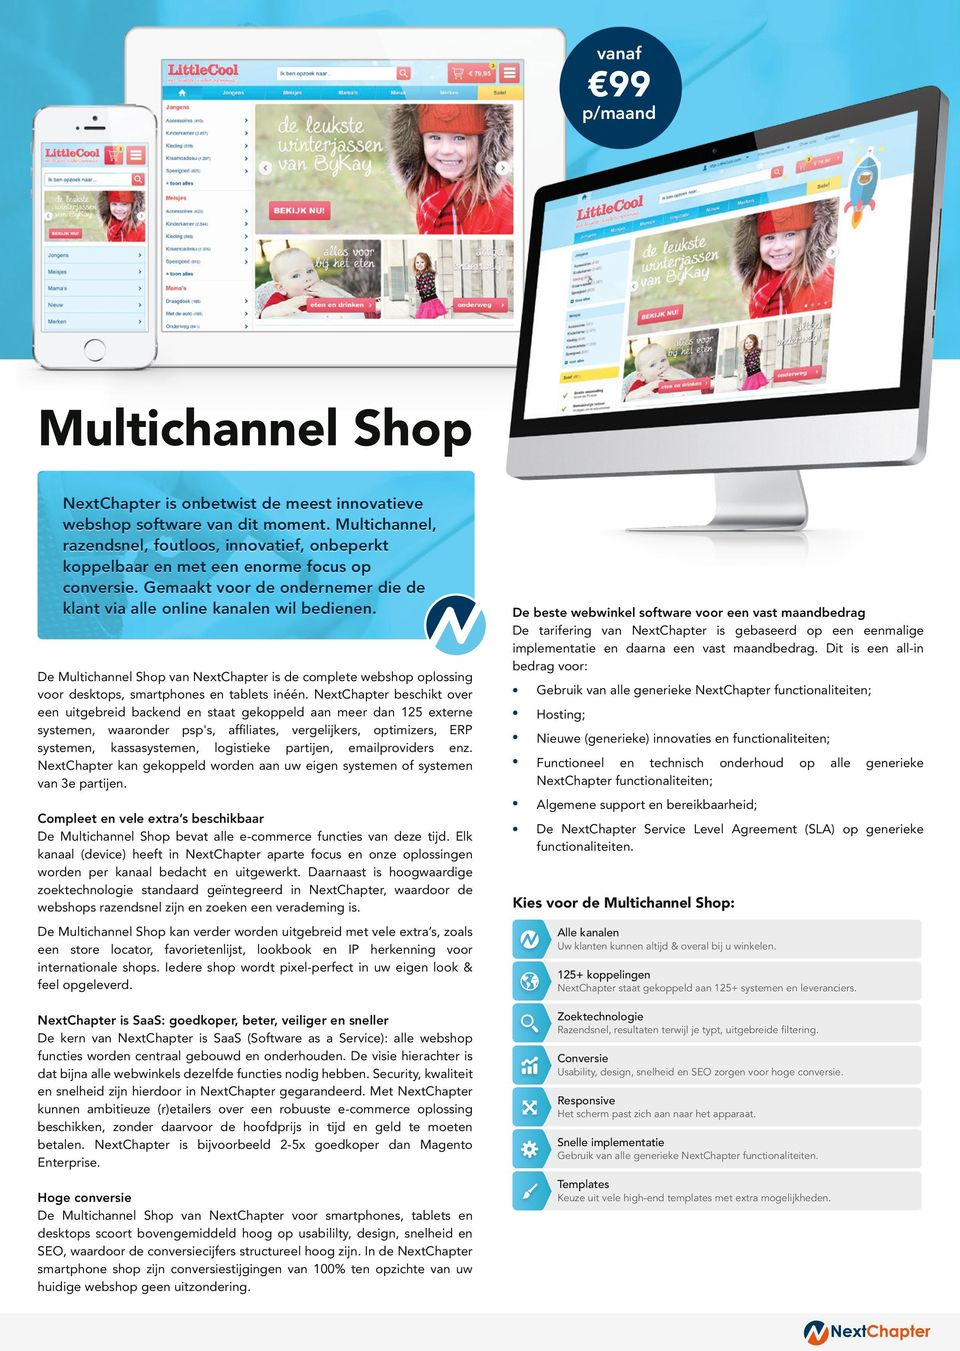 De Multichannel Shop van NextChapter is de complete webshop oplossing voor desktops, smartphones en tablets inéén.